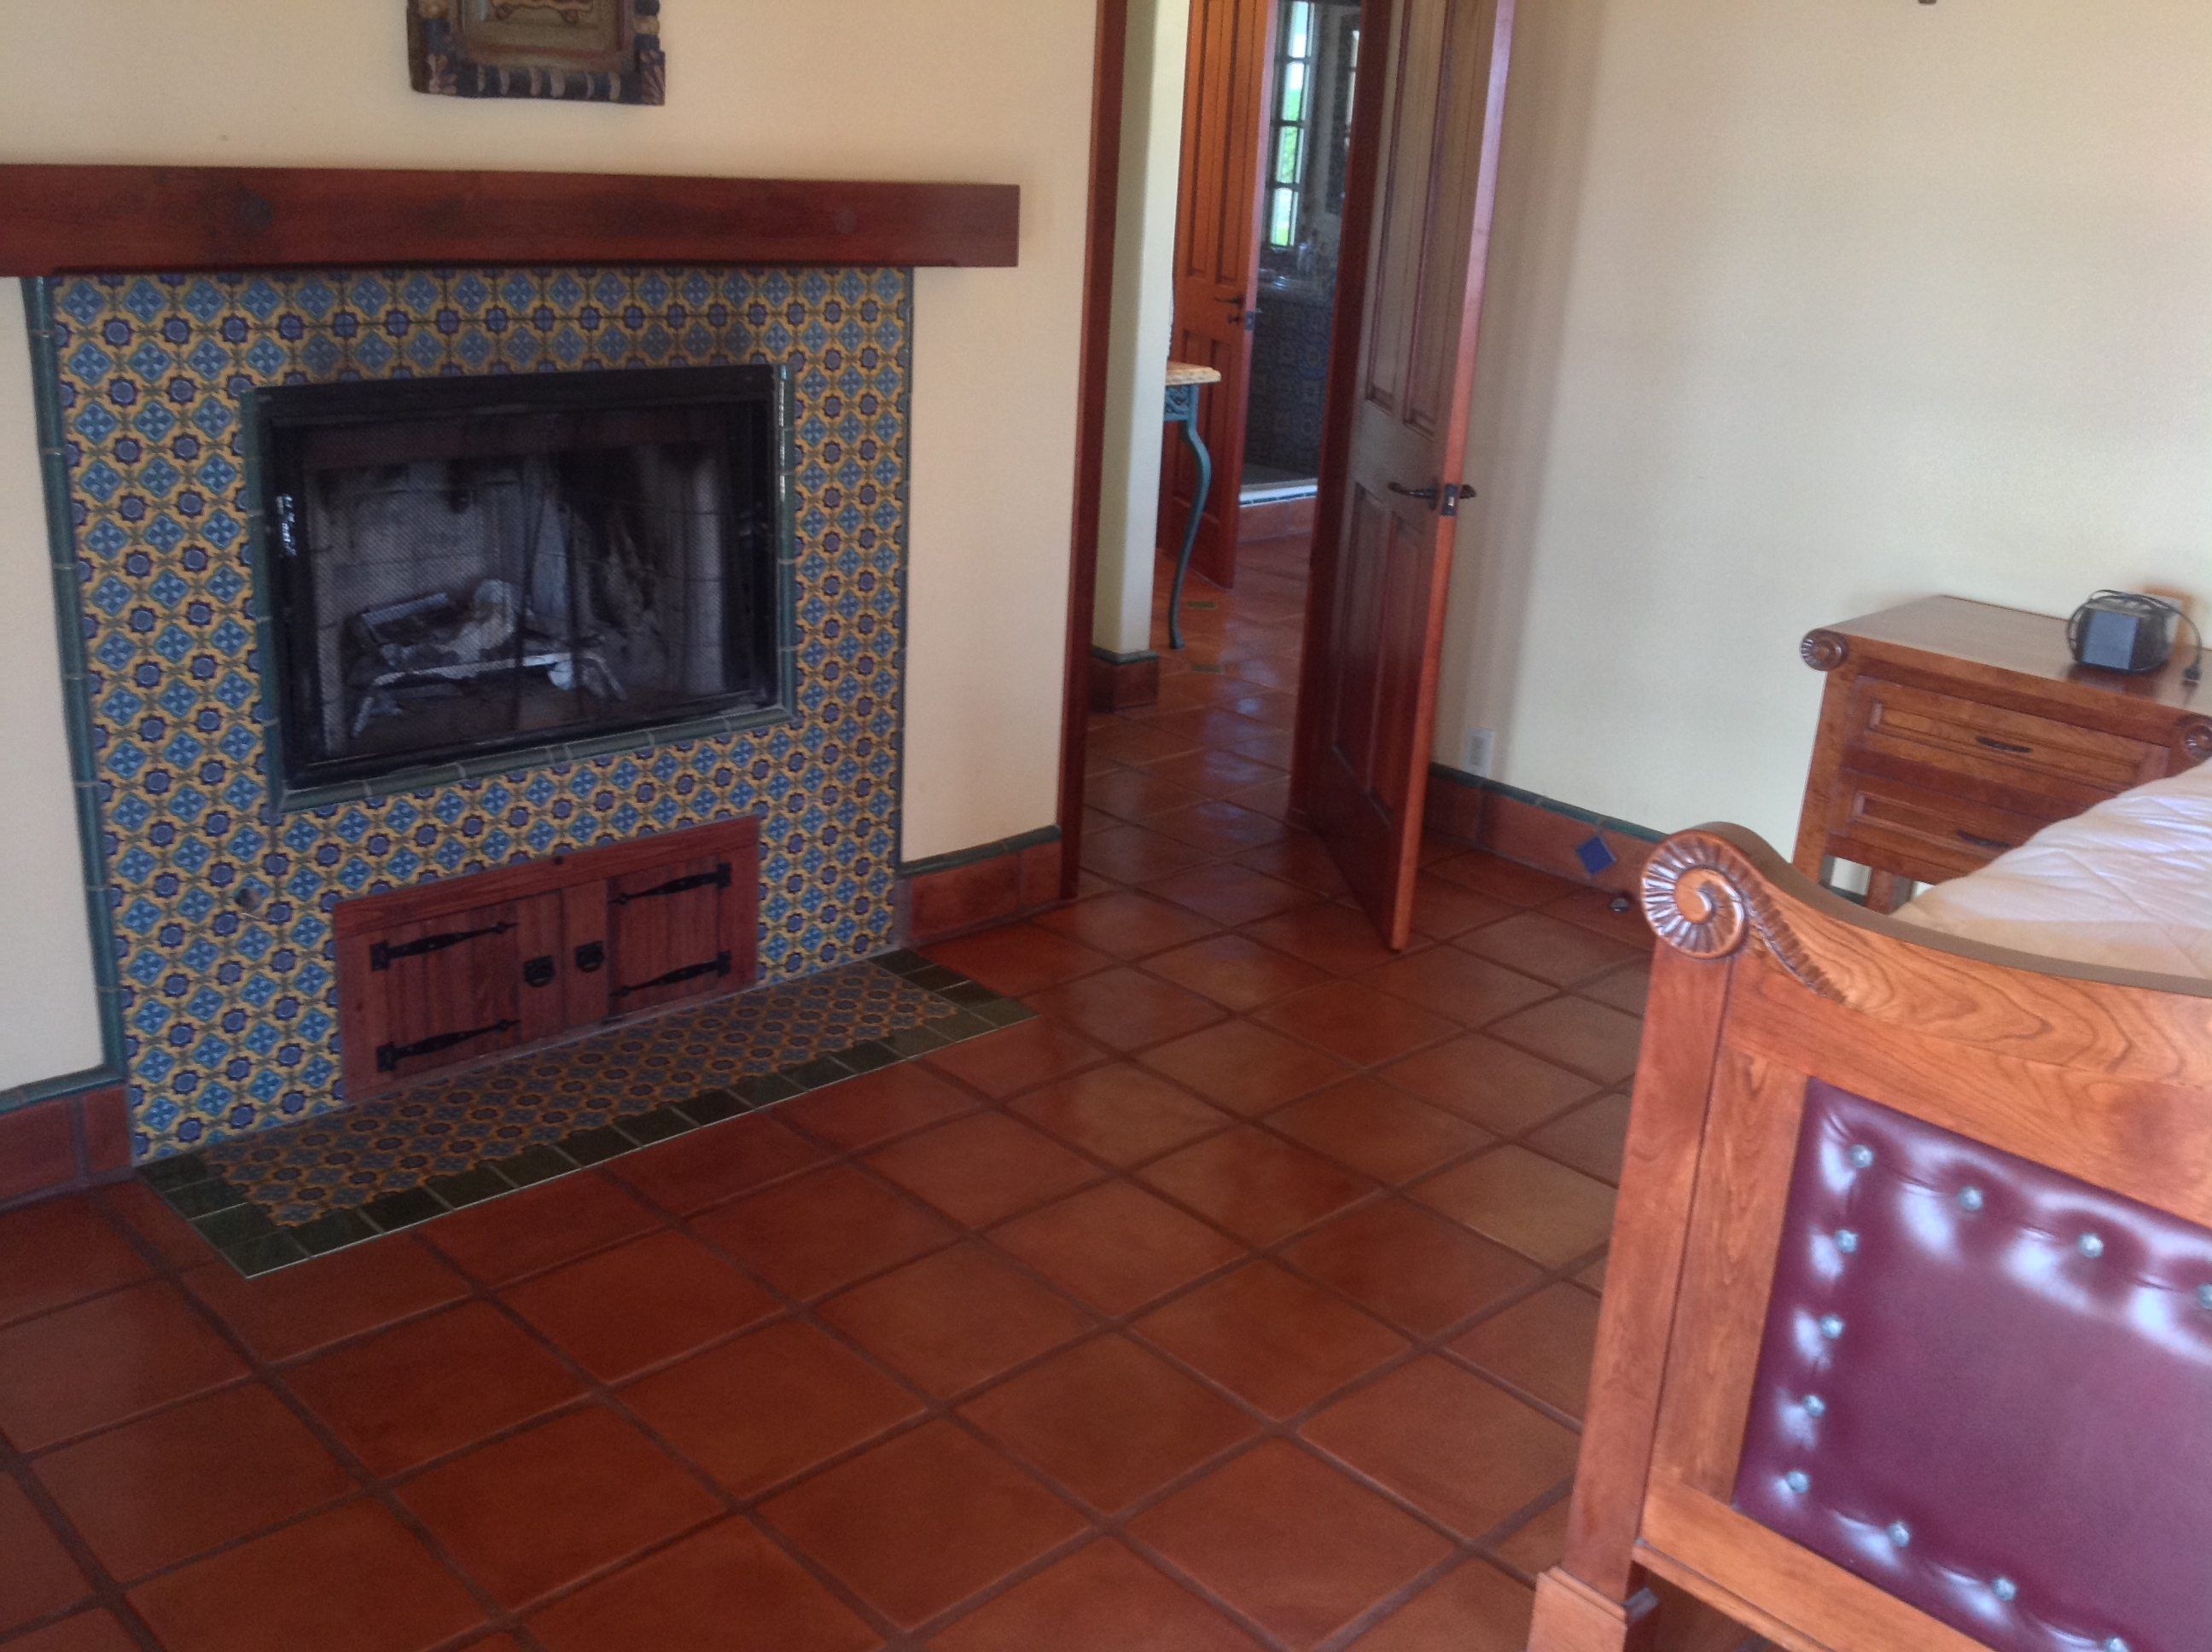 Tile staining services northern california stained ceramic tile floor dailygadgetfo Image collections